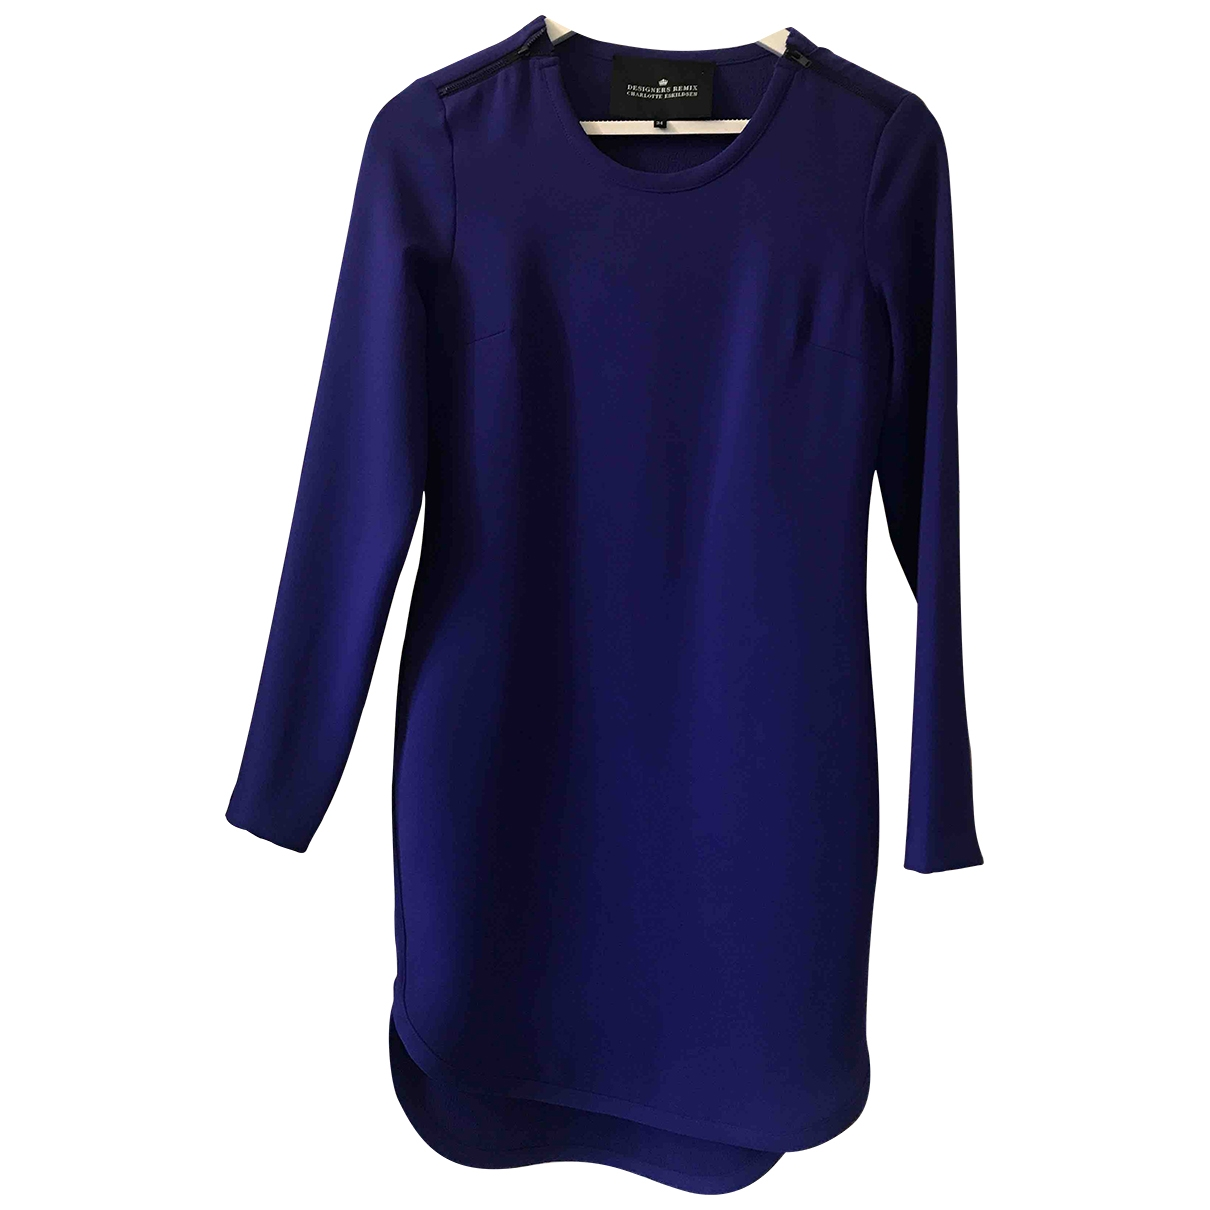 Charlotte Eskildsen \N Blue dress for Women 34 FR